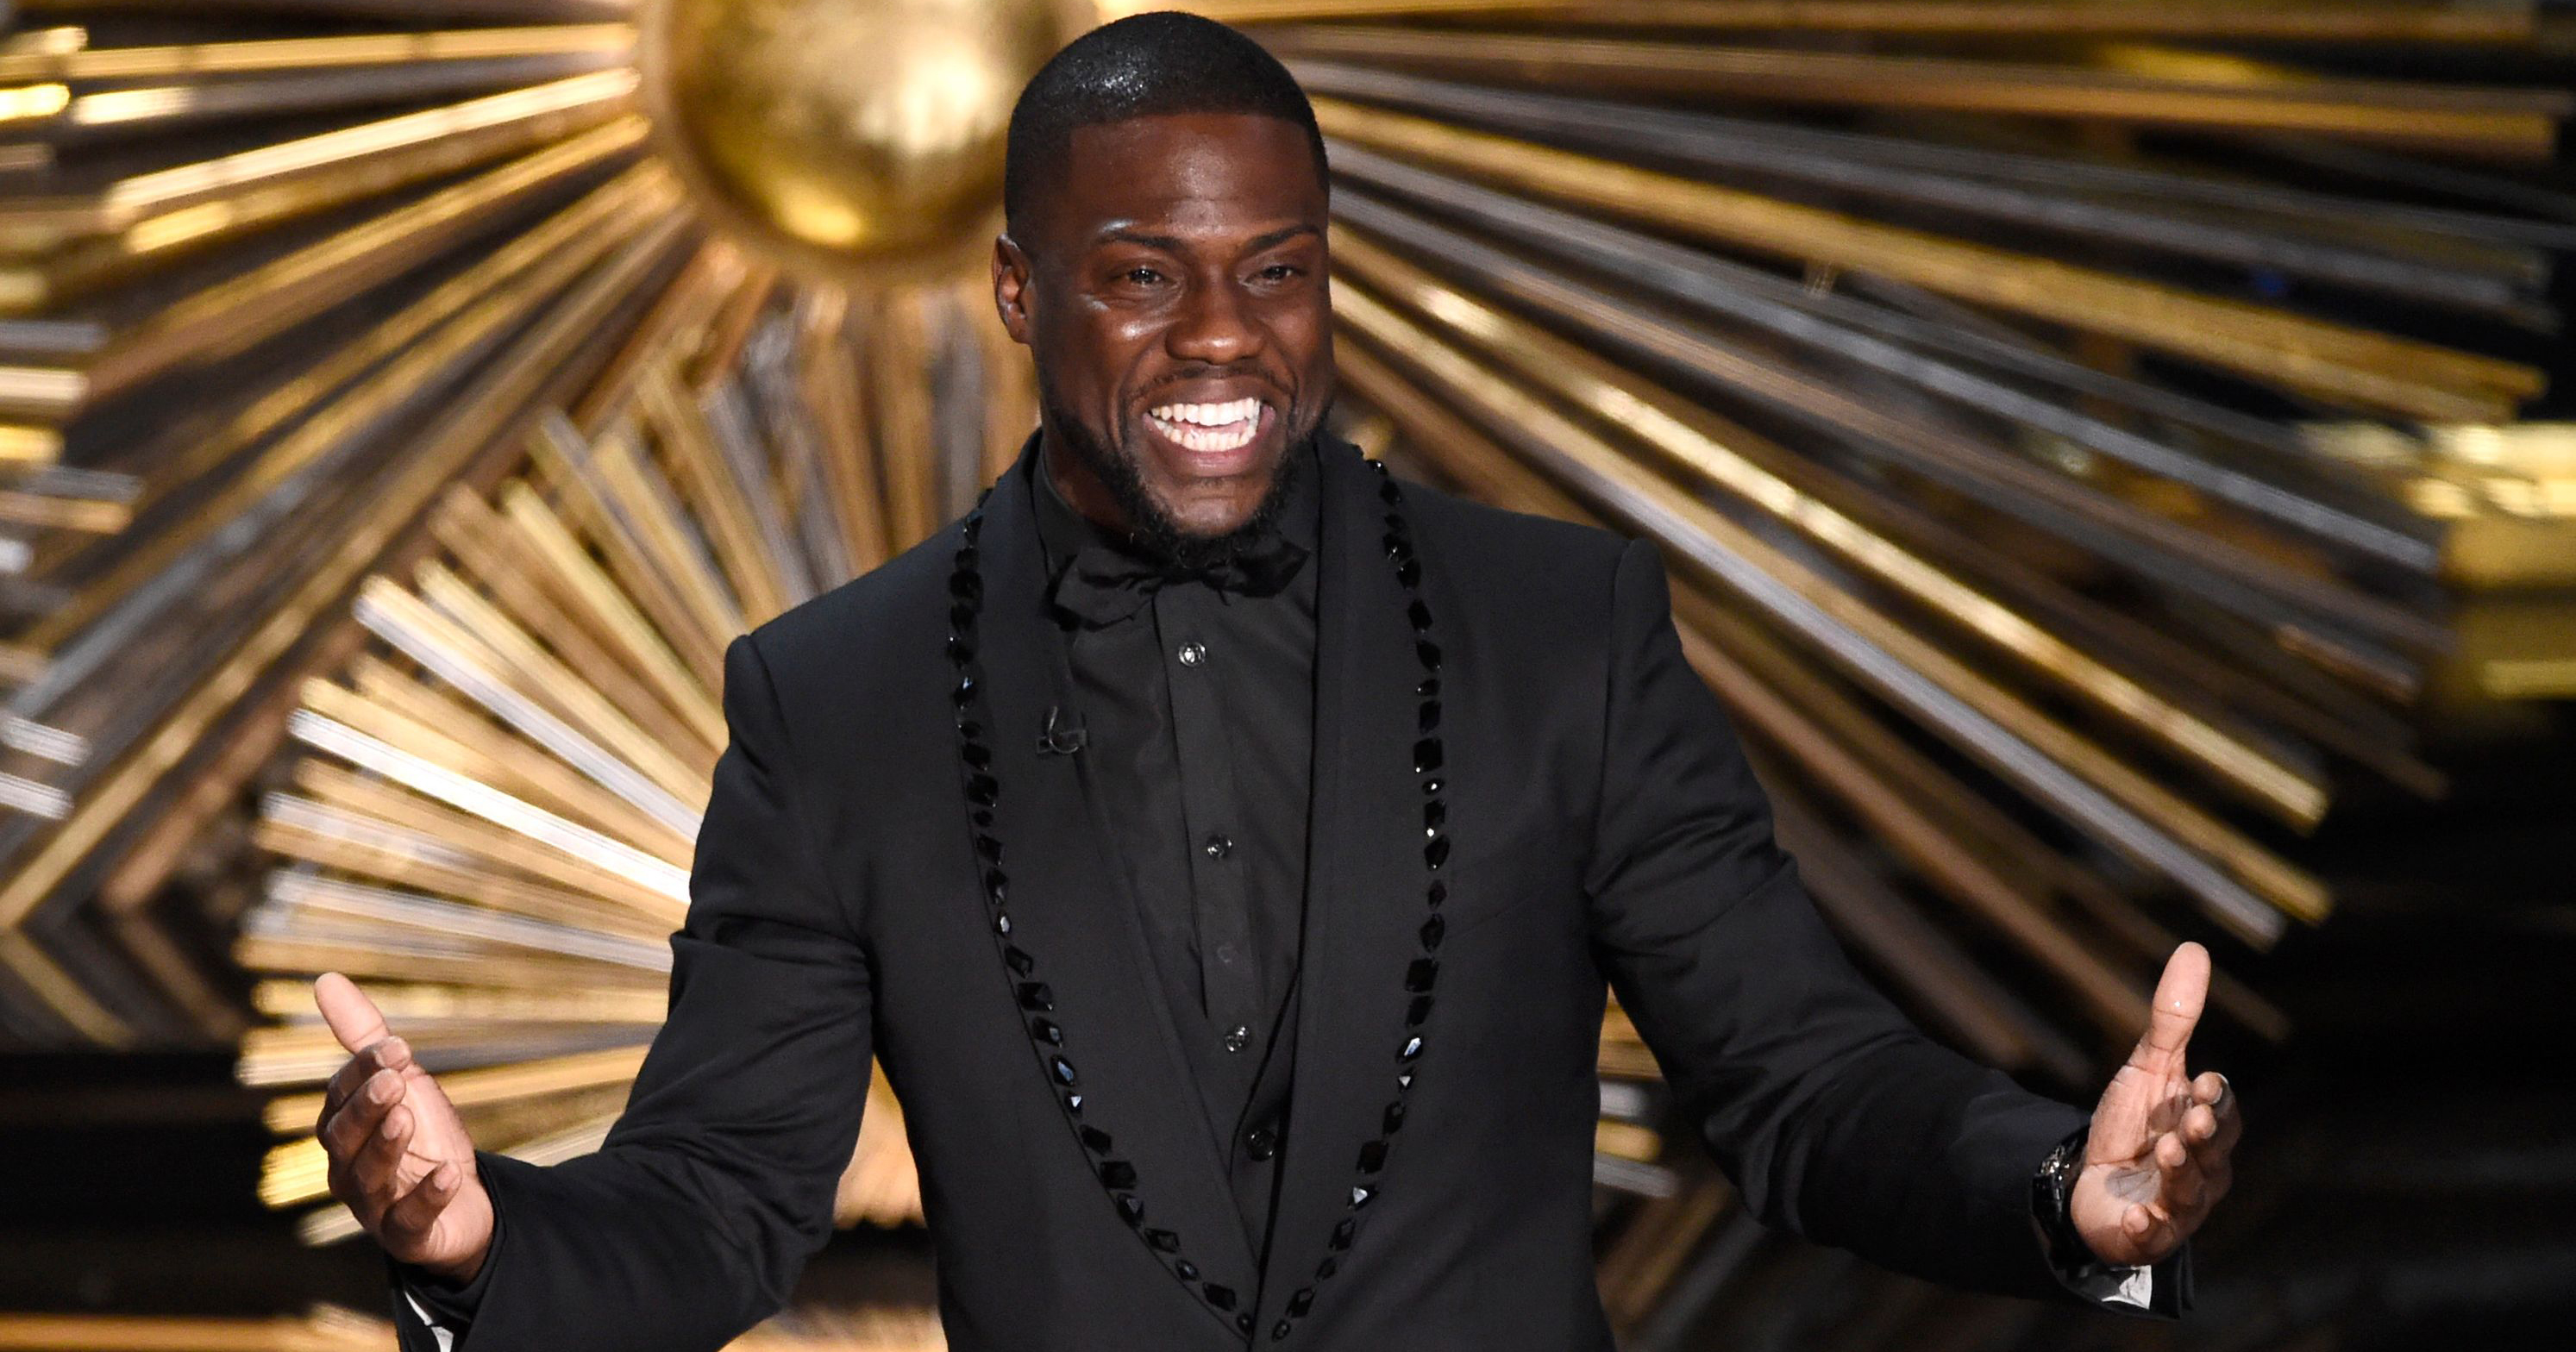 Kevin Hart's appearance at last years Oscar ceremony dressed in a tuxedo